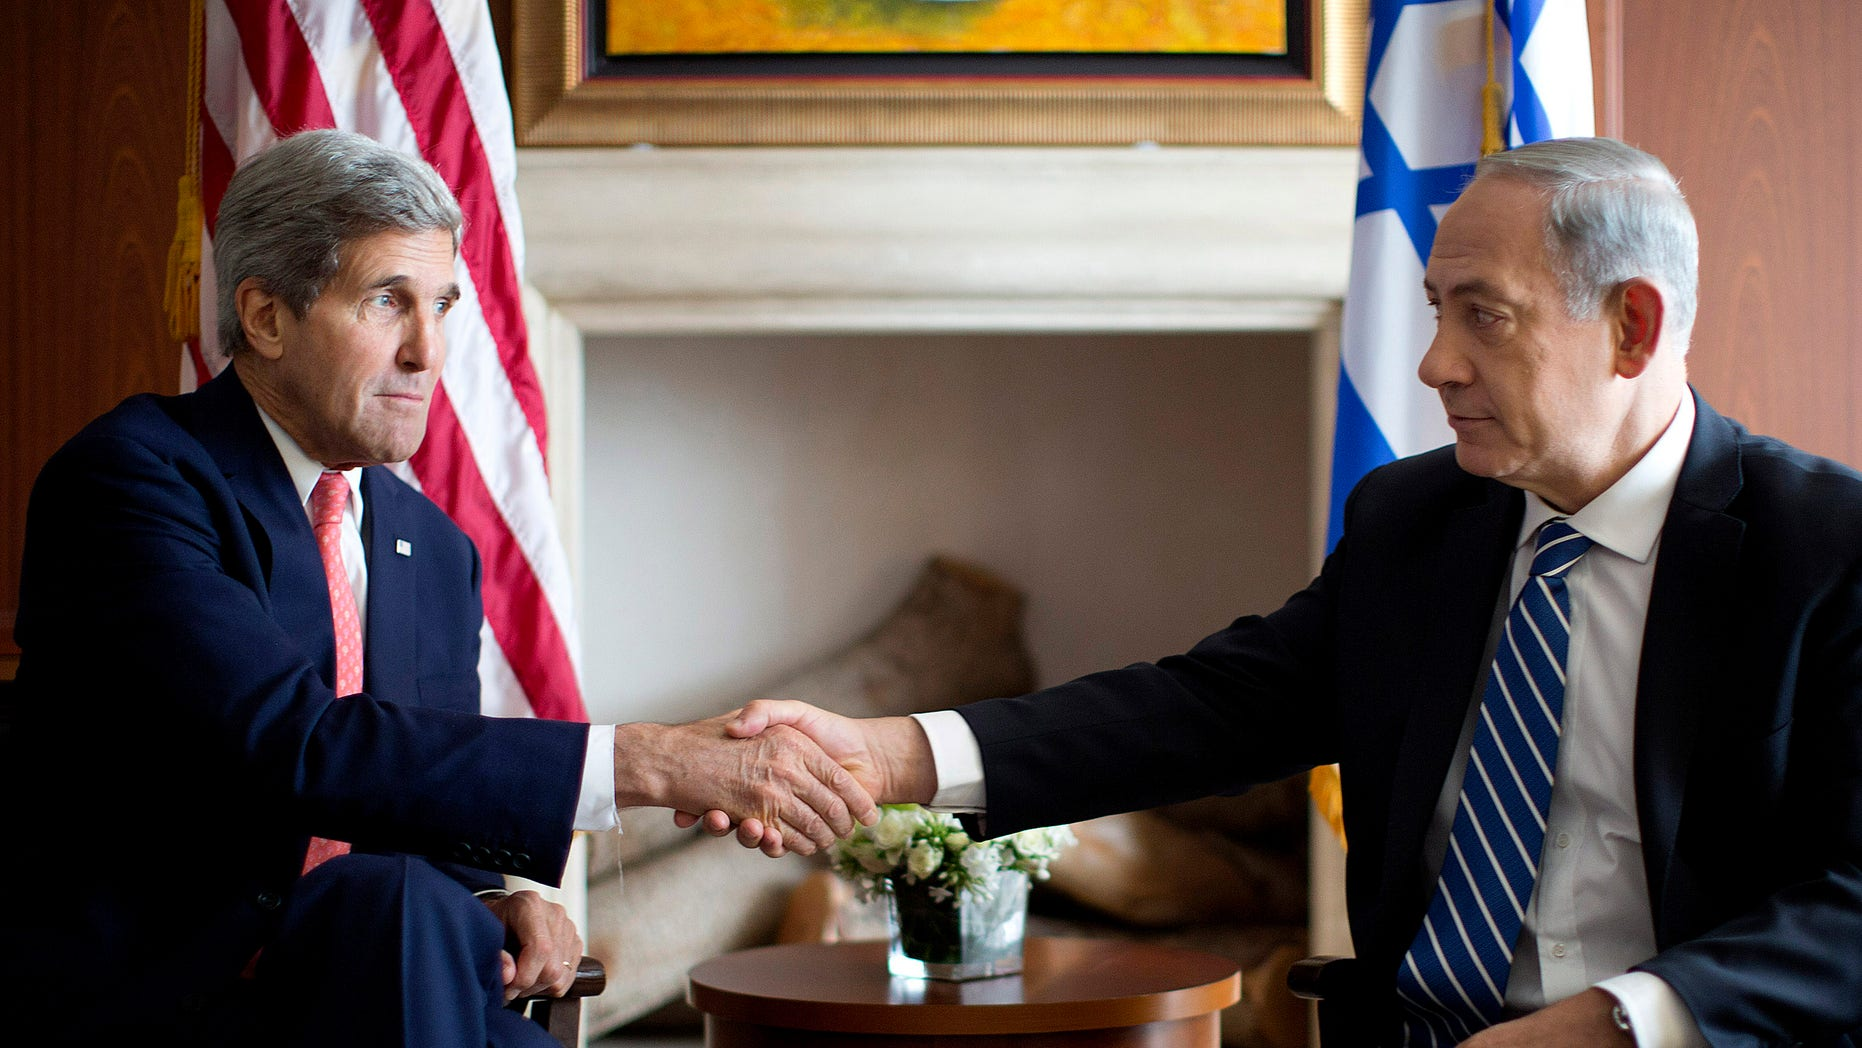 U.S. Secretary of State John Kerry, right, shakes hands with Israeli Prime Minister Benjamin Netanyahu in Jerusalem, Wednesday, Nov. 6, 2013. (AP Photo/Jason Reed, Pool)